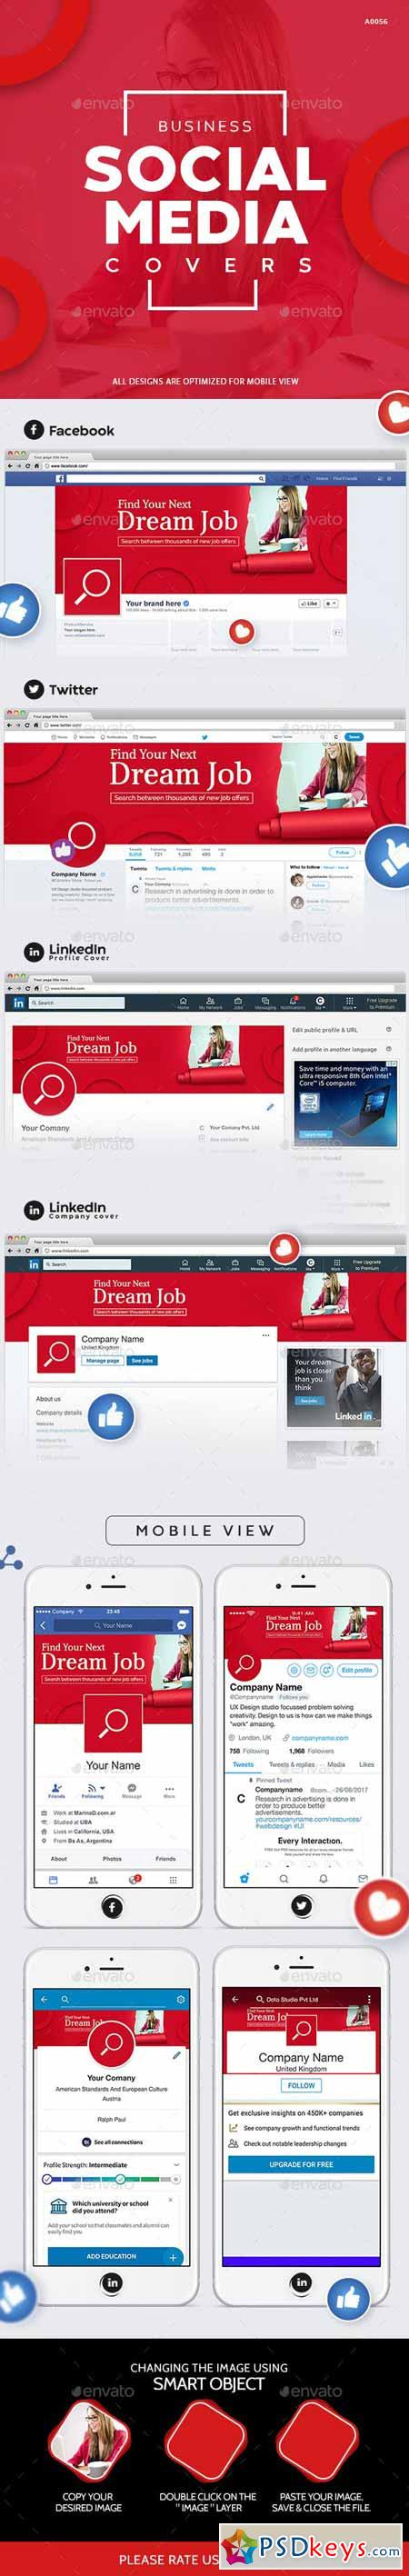 Business Social Media Cover Set 23037025